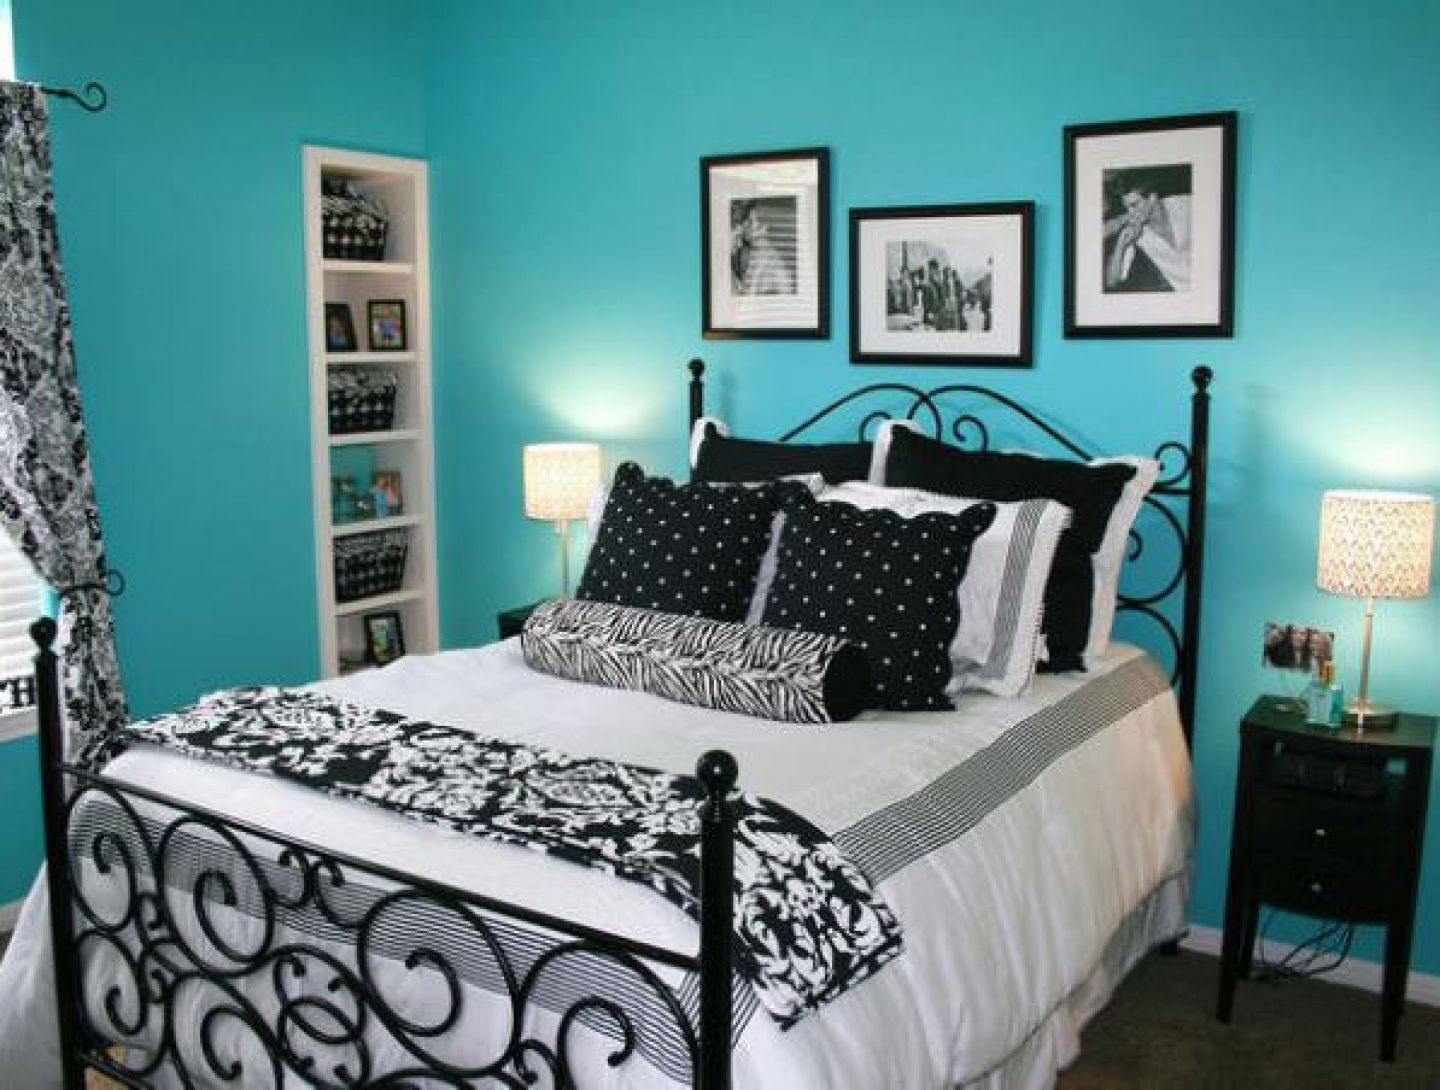 Black and blue bedroom walls - Wonderful Blue Themes Teenage Girl Room Ideas With Elegant Black Metal Bed Frame That Have White Bedding Complete With The Pillows And Beautiful Three